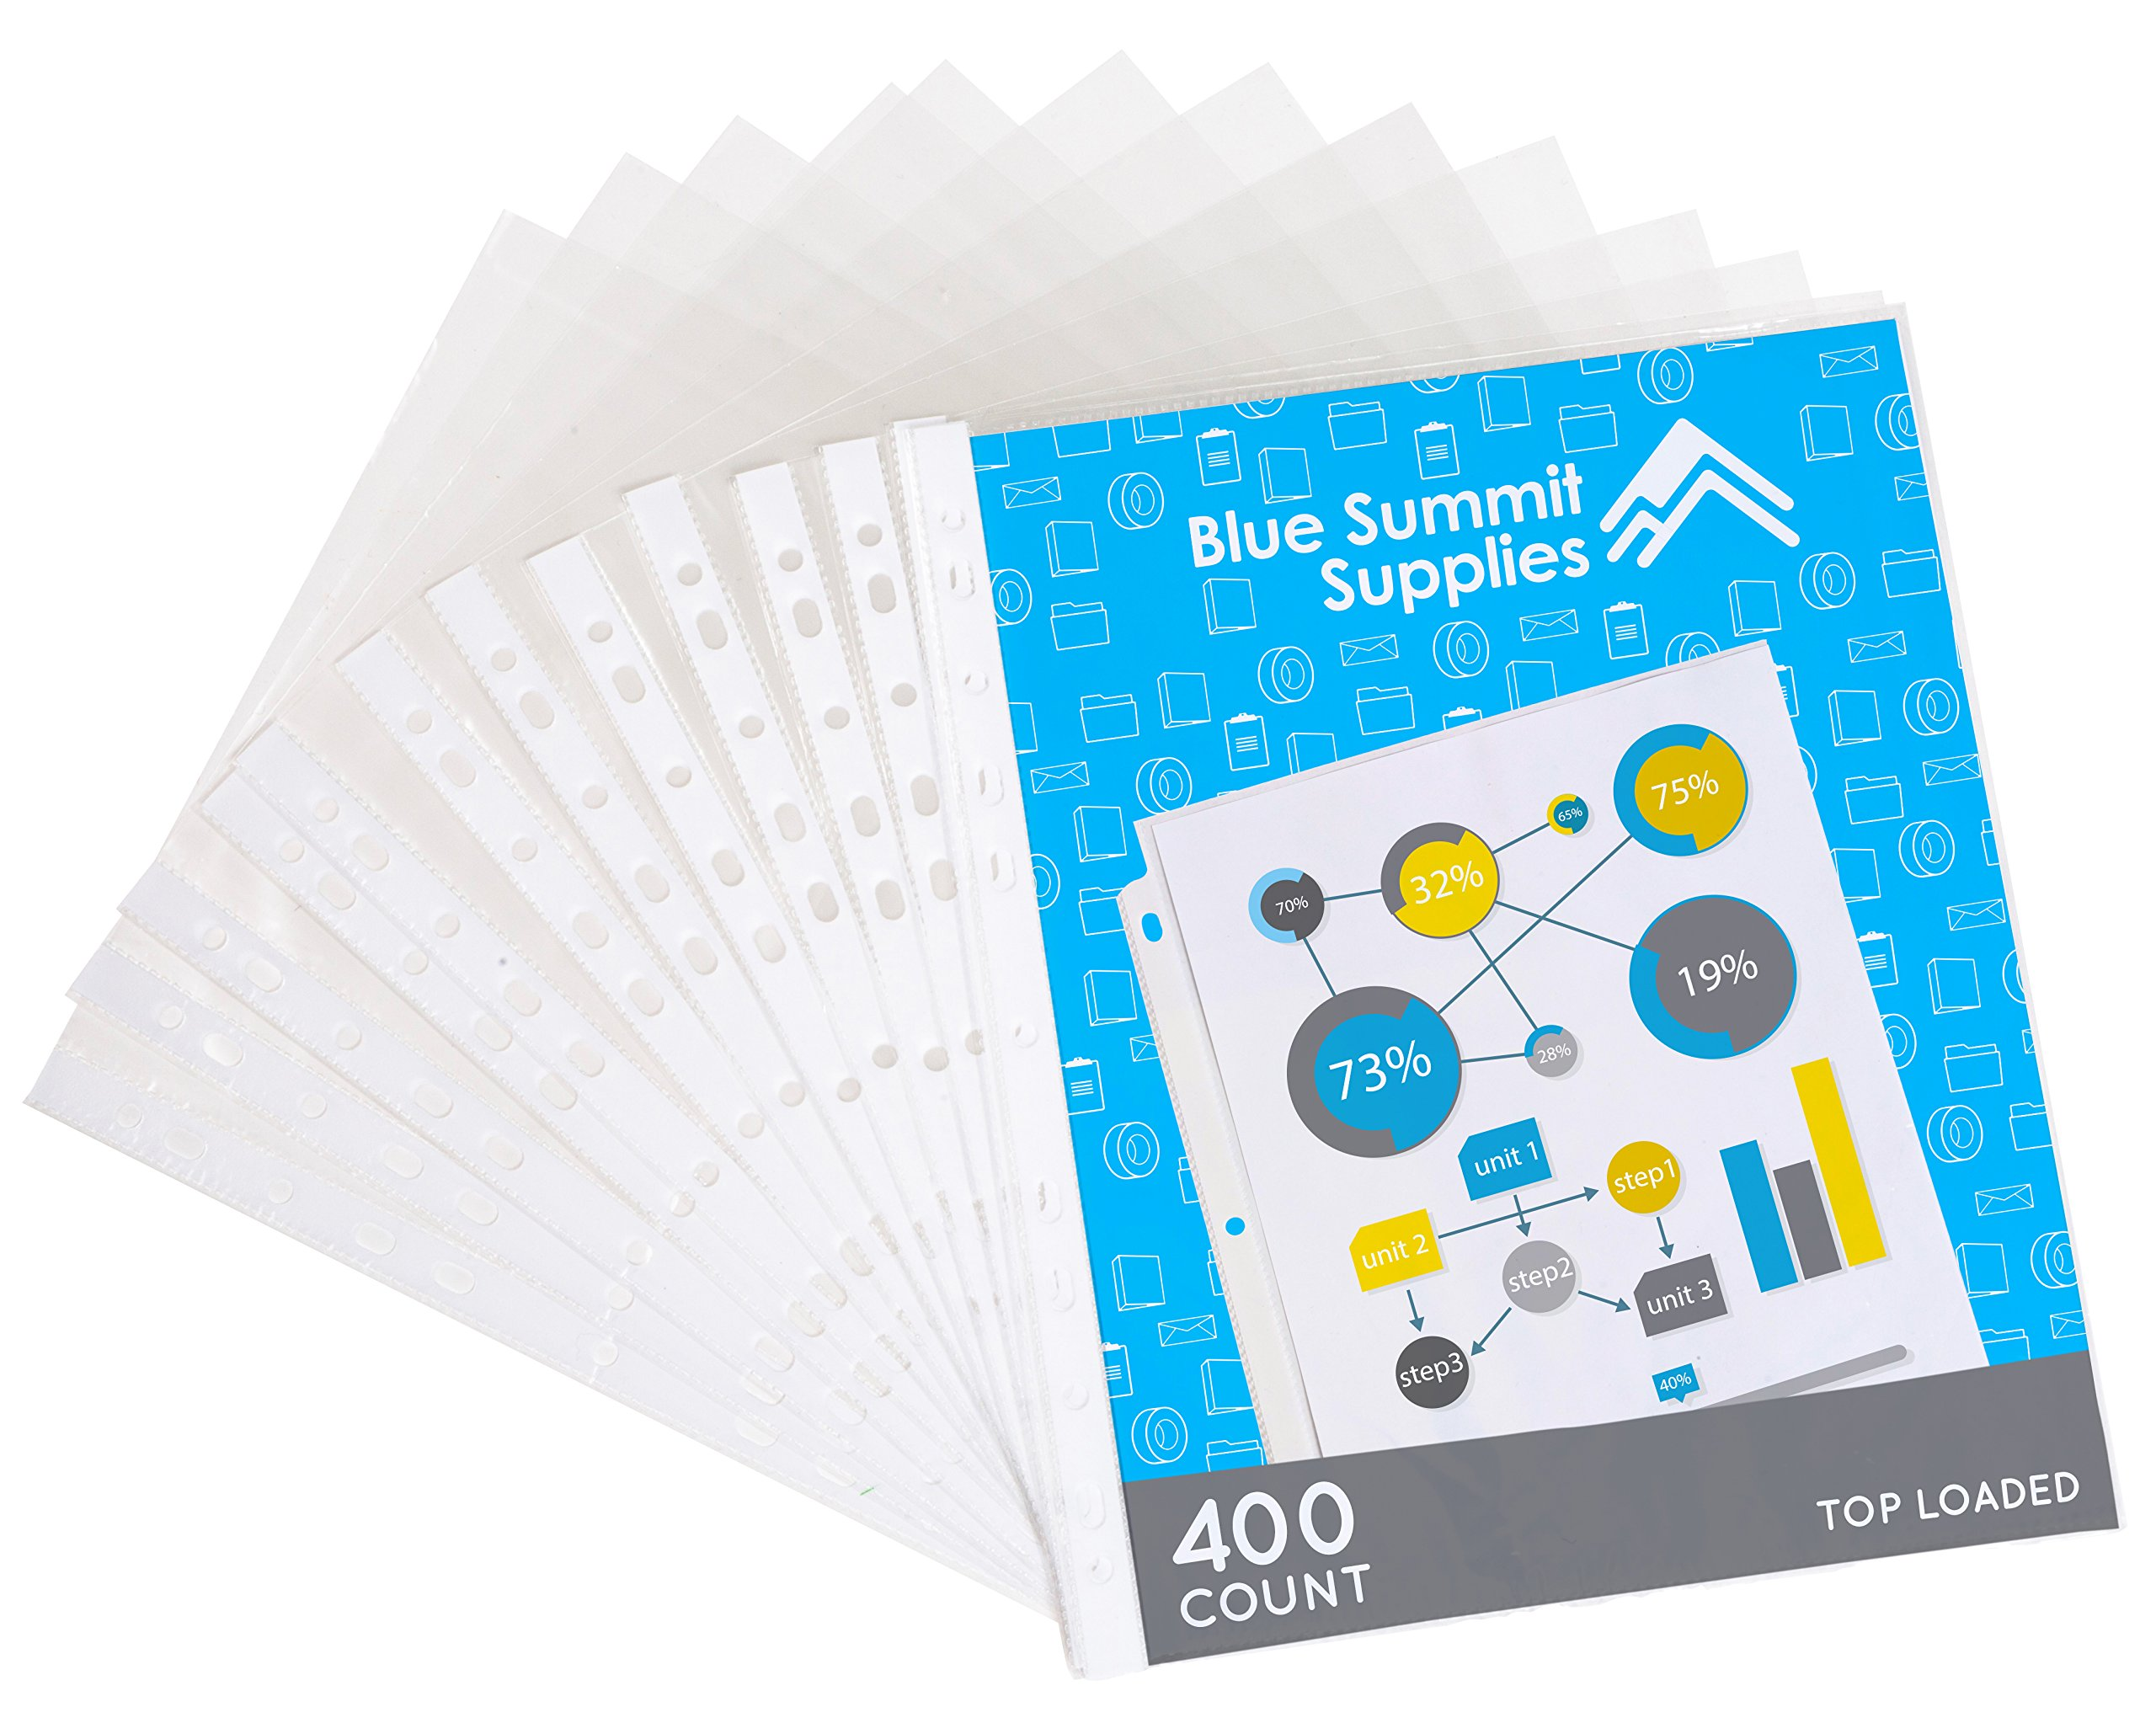 400 Sheet Protectors, 11 Hole Lightweight Binder Sleeves, Designed to Protect Frequently Used 8.5 x 11 Papers, Acid and PVC Free Page Protector, Clear Plastic Design, 9.25 x 11.25 Top Loaded, 400 ct by Blue Summit Supplies